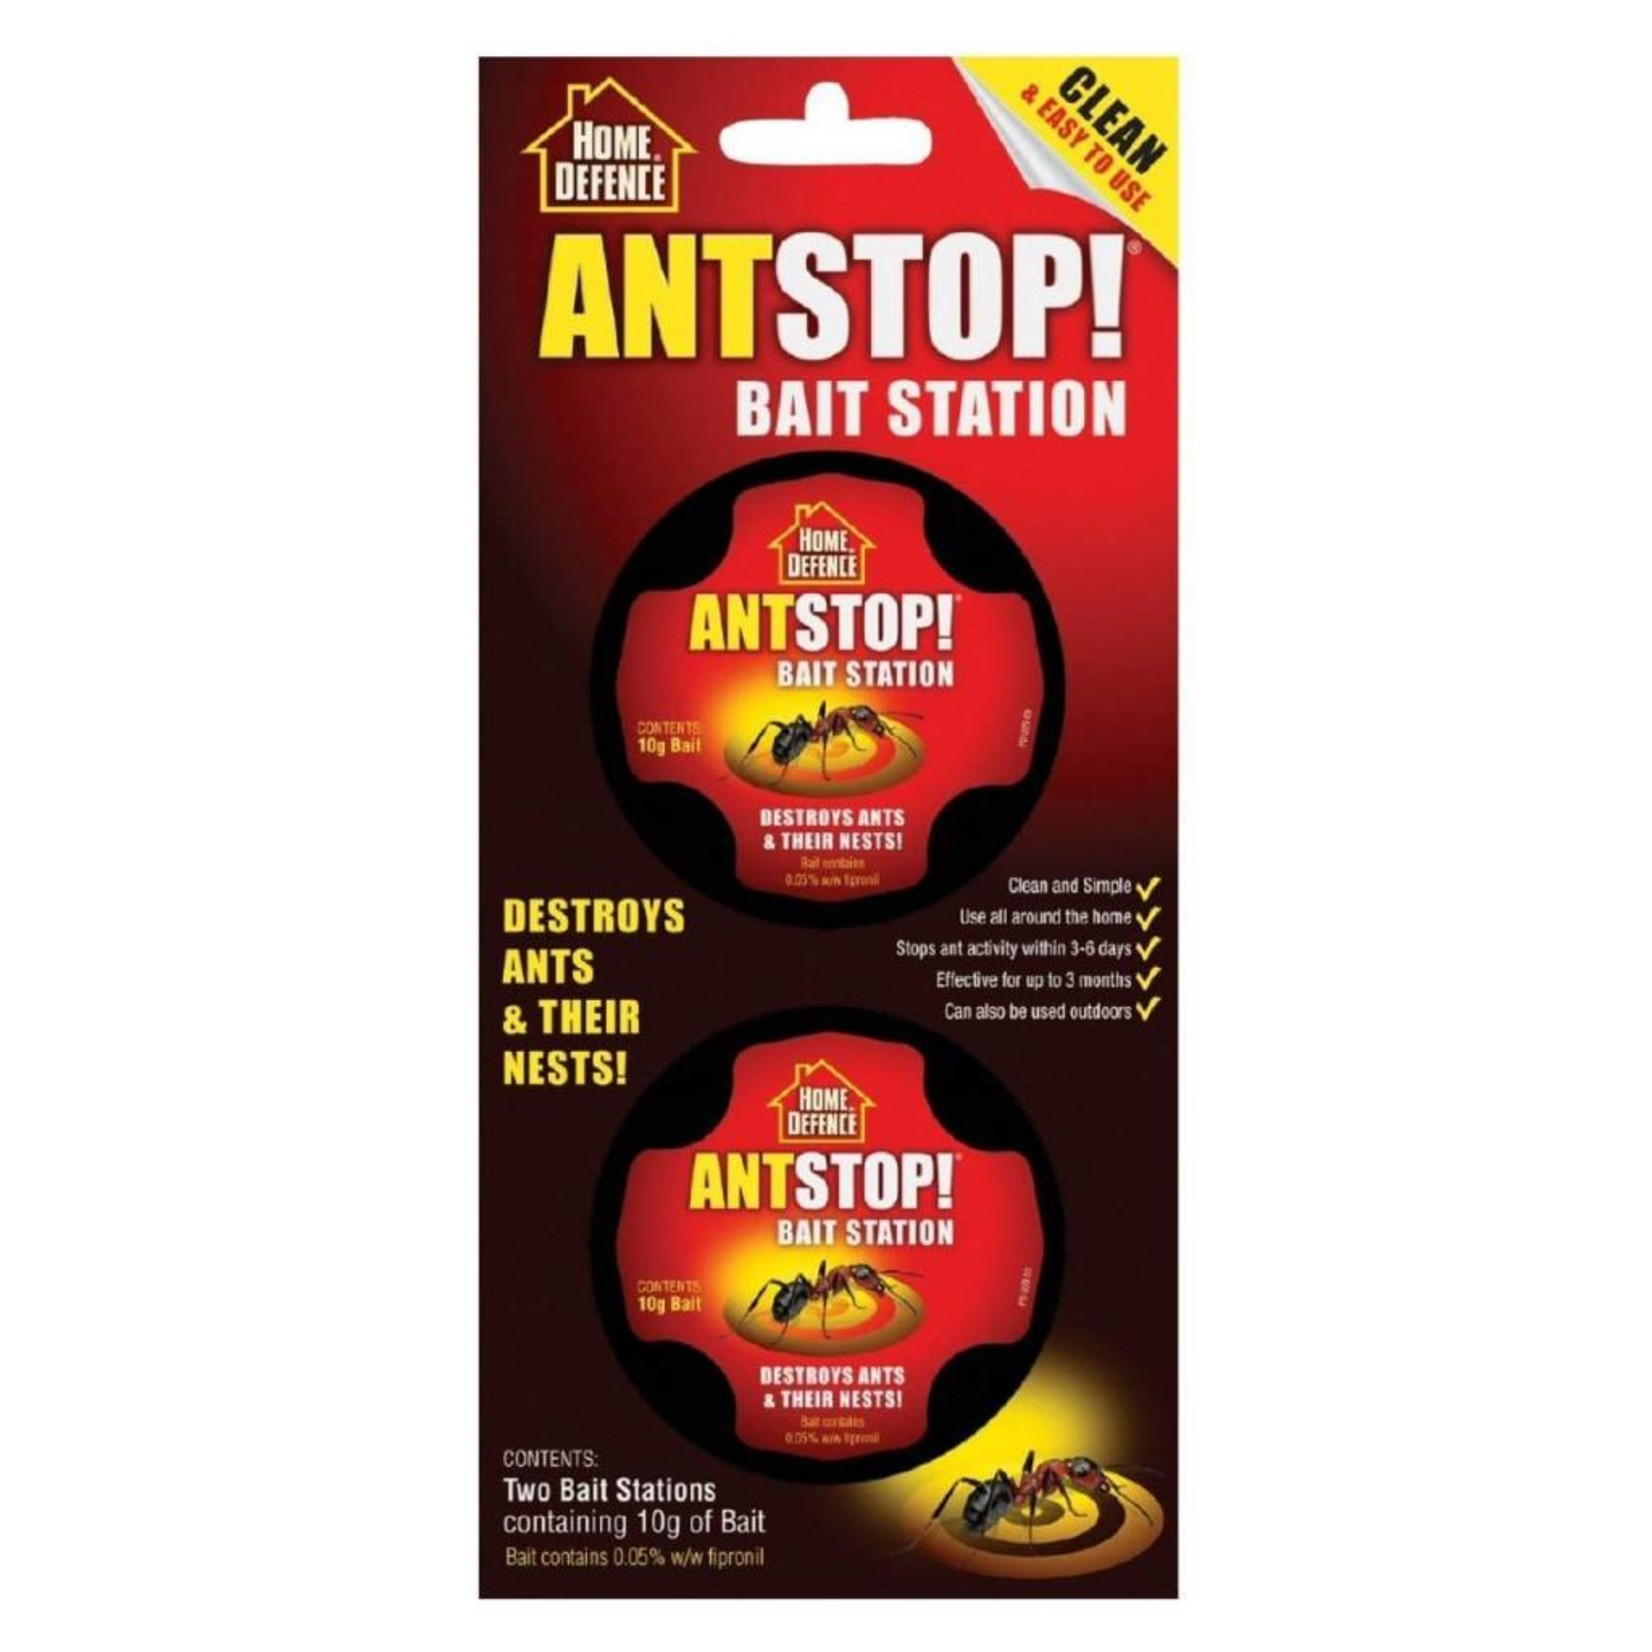 Home Defence Ant Stop Bait Station Pre-Baited Kills Ants & Nests